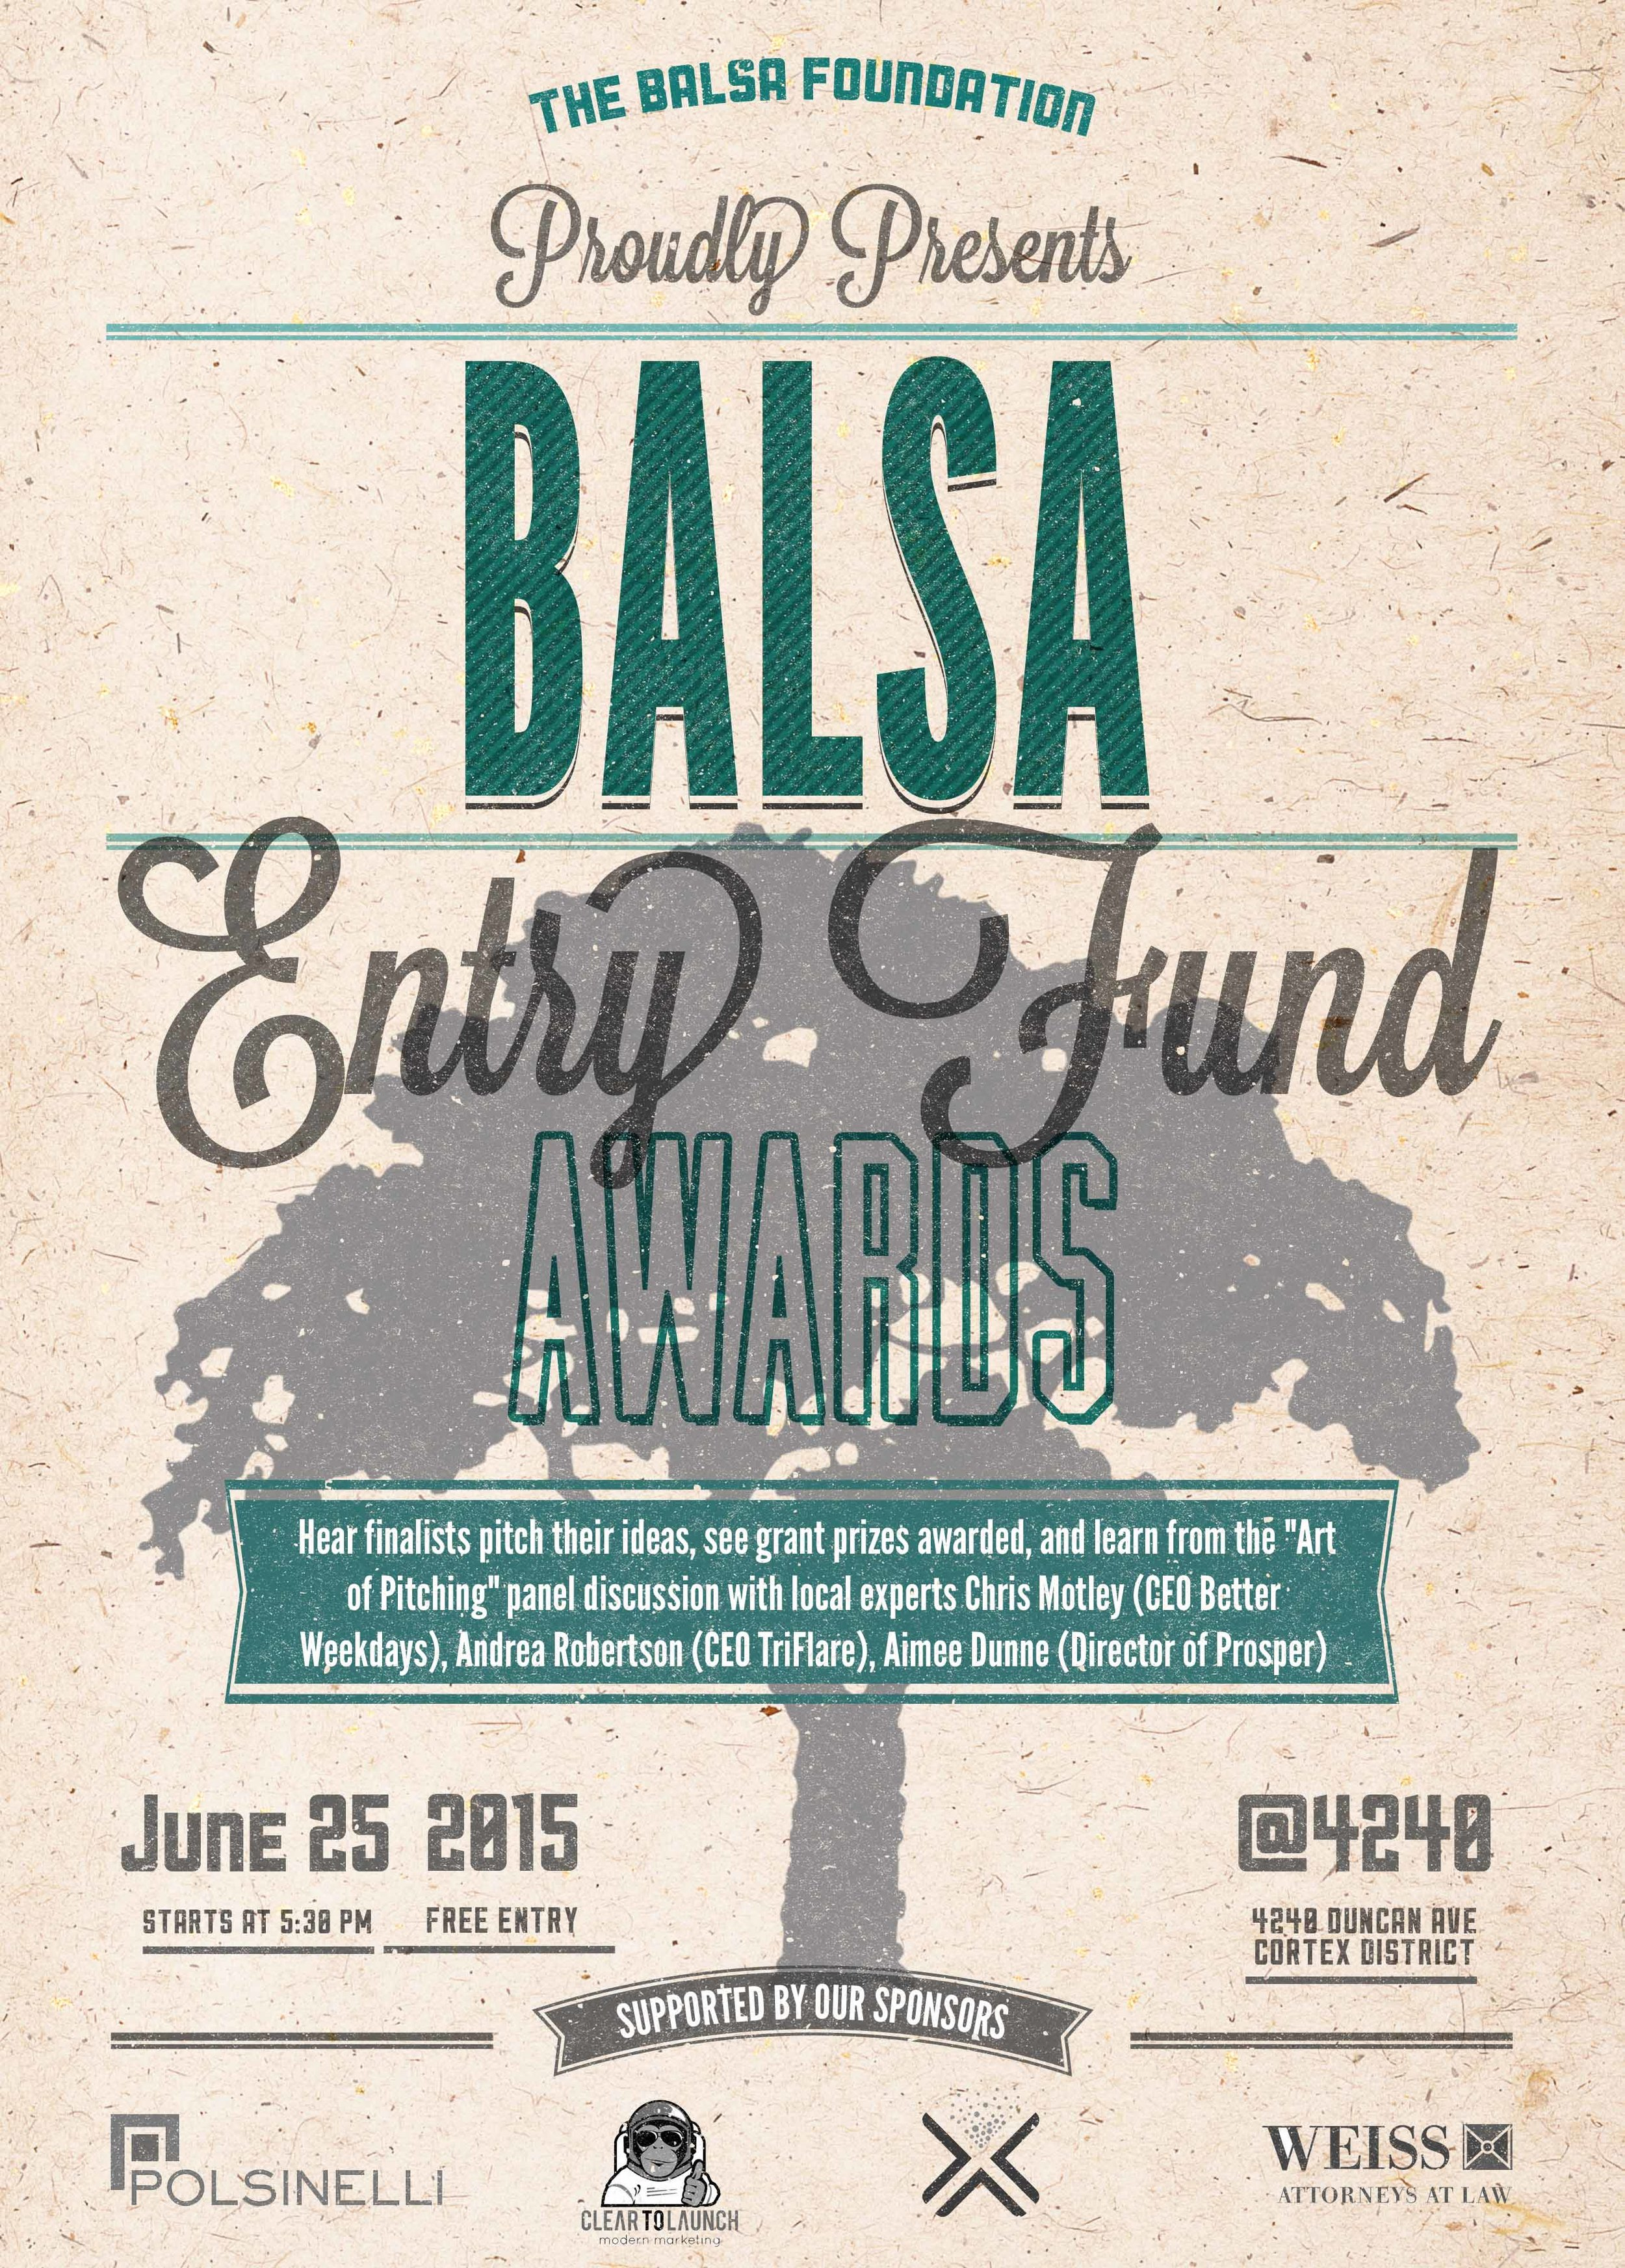 BALSA-PARTY-FLYER-June-2015.v1.3.jpg